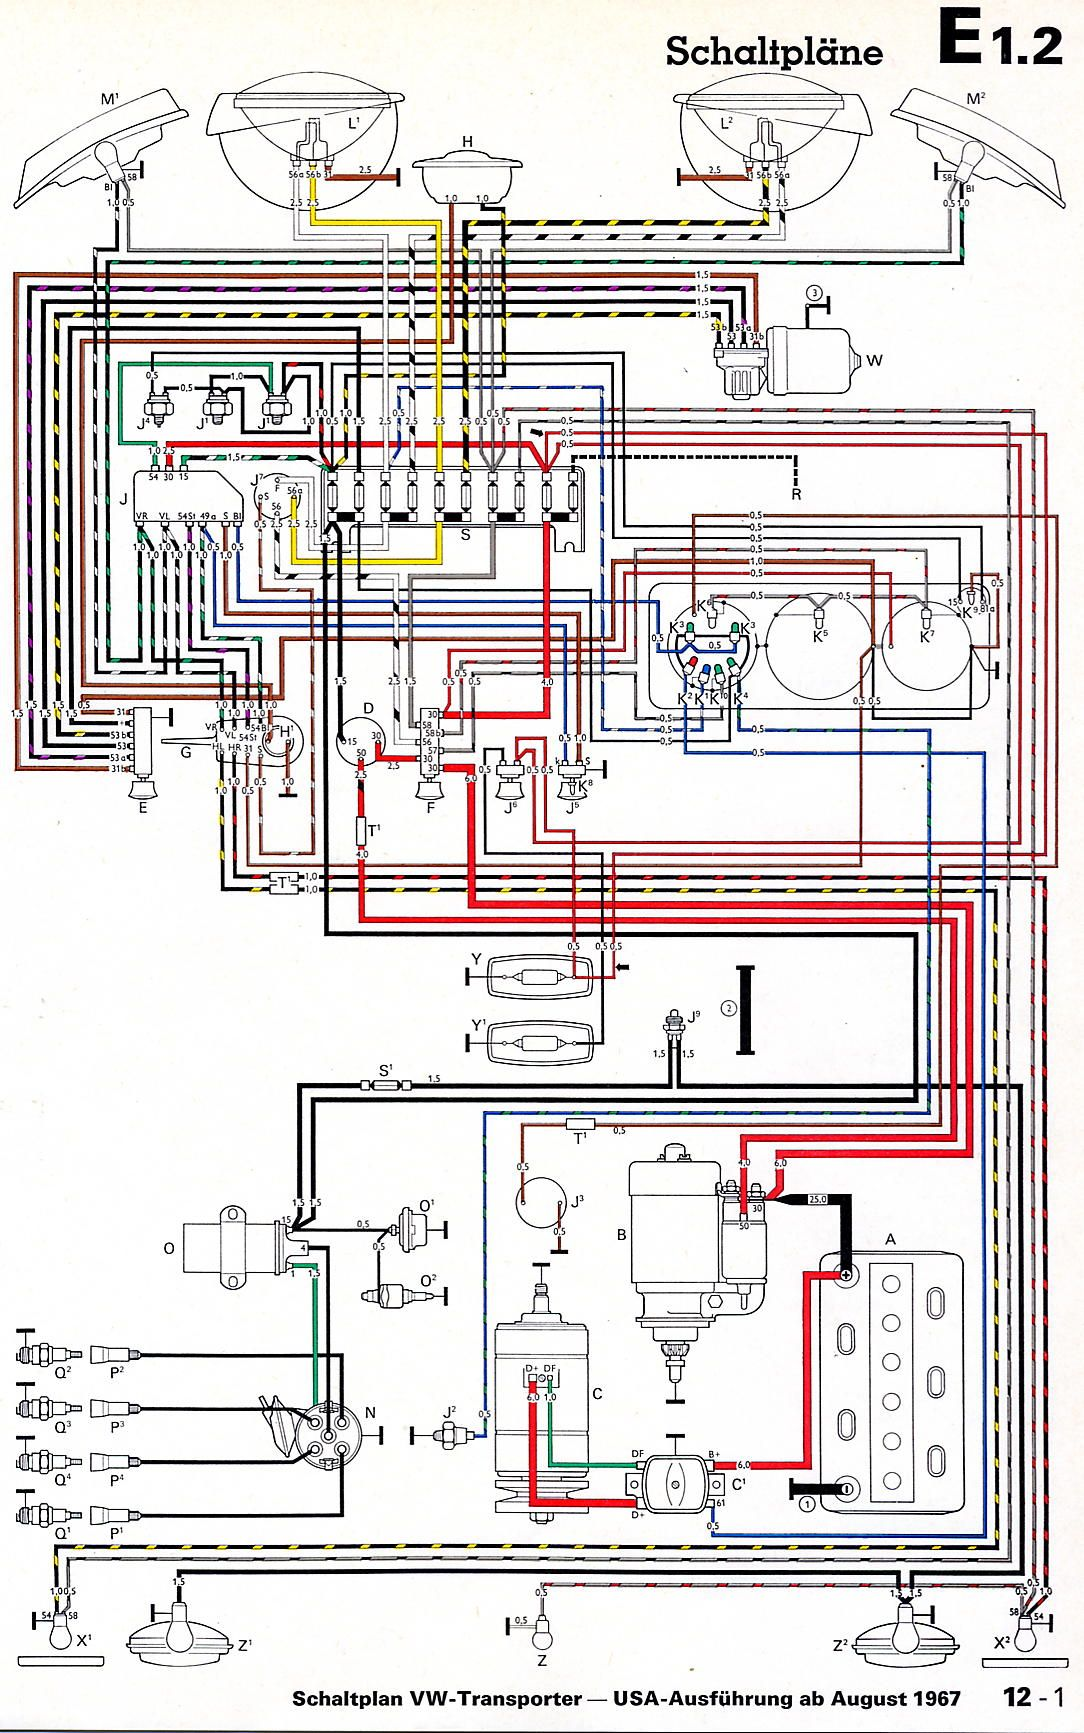 1968 VW Bus Wiring Diagram | Kombi Ideas | Vw bus